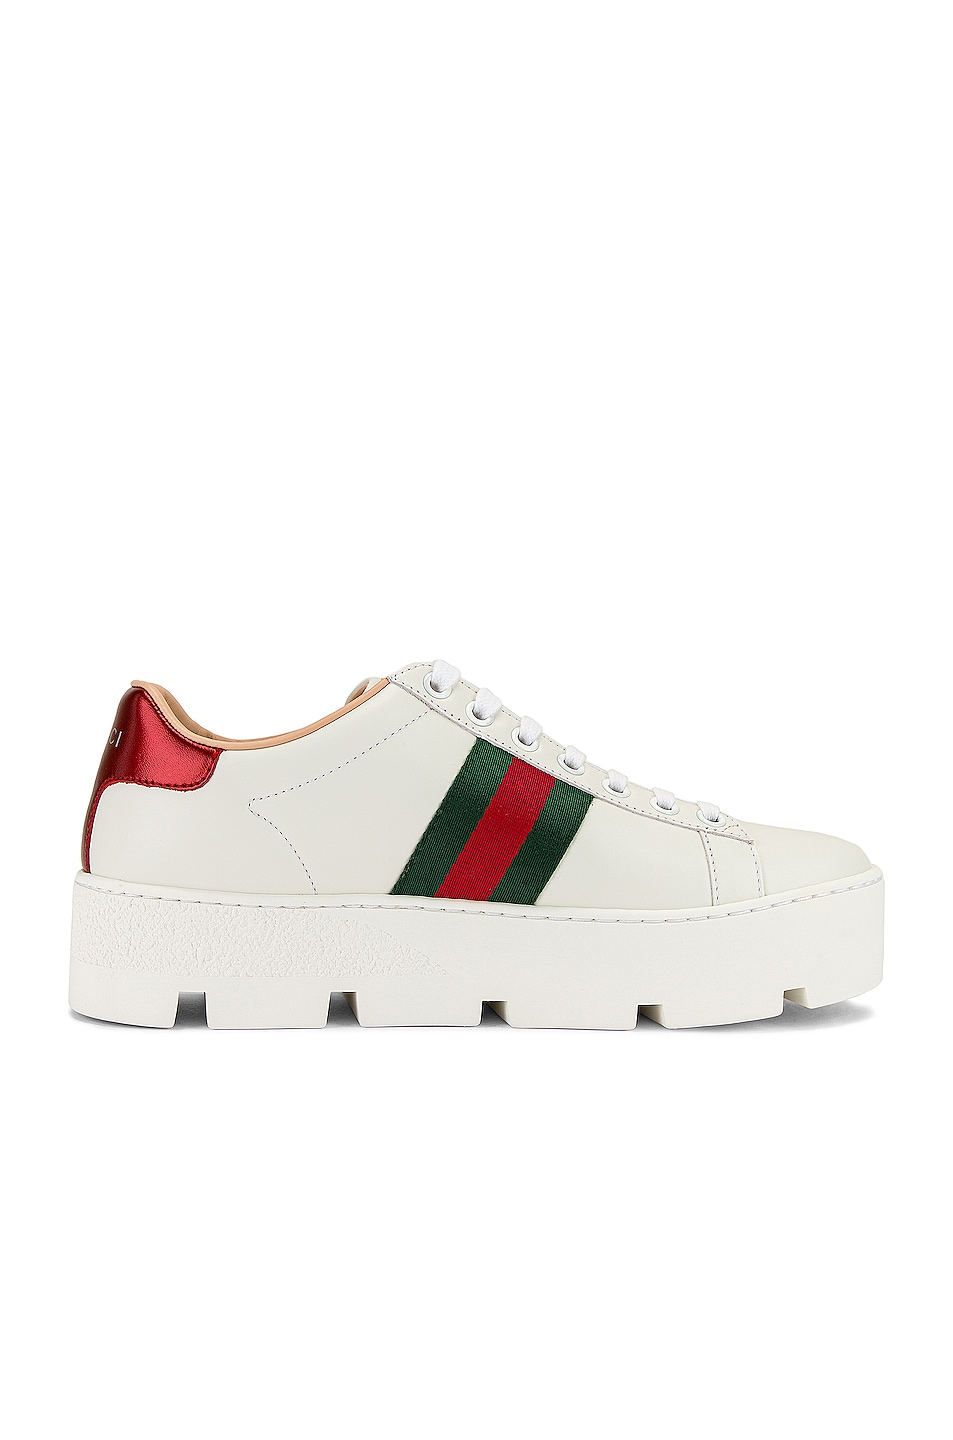 Image 7 of Gucci New Ace Platform Sneakers in White & Green & Red